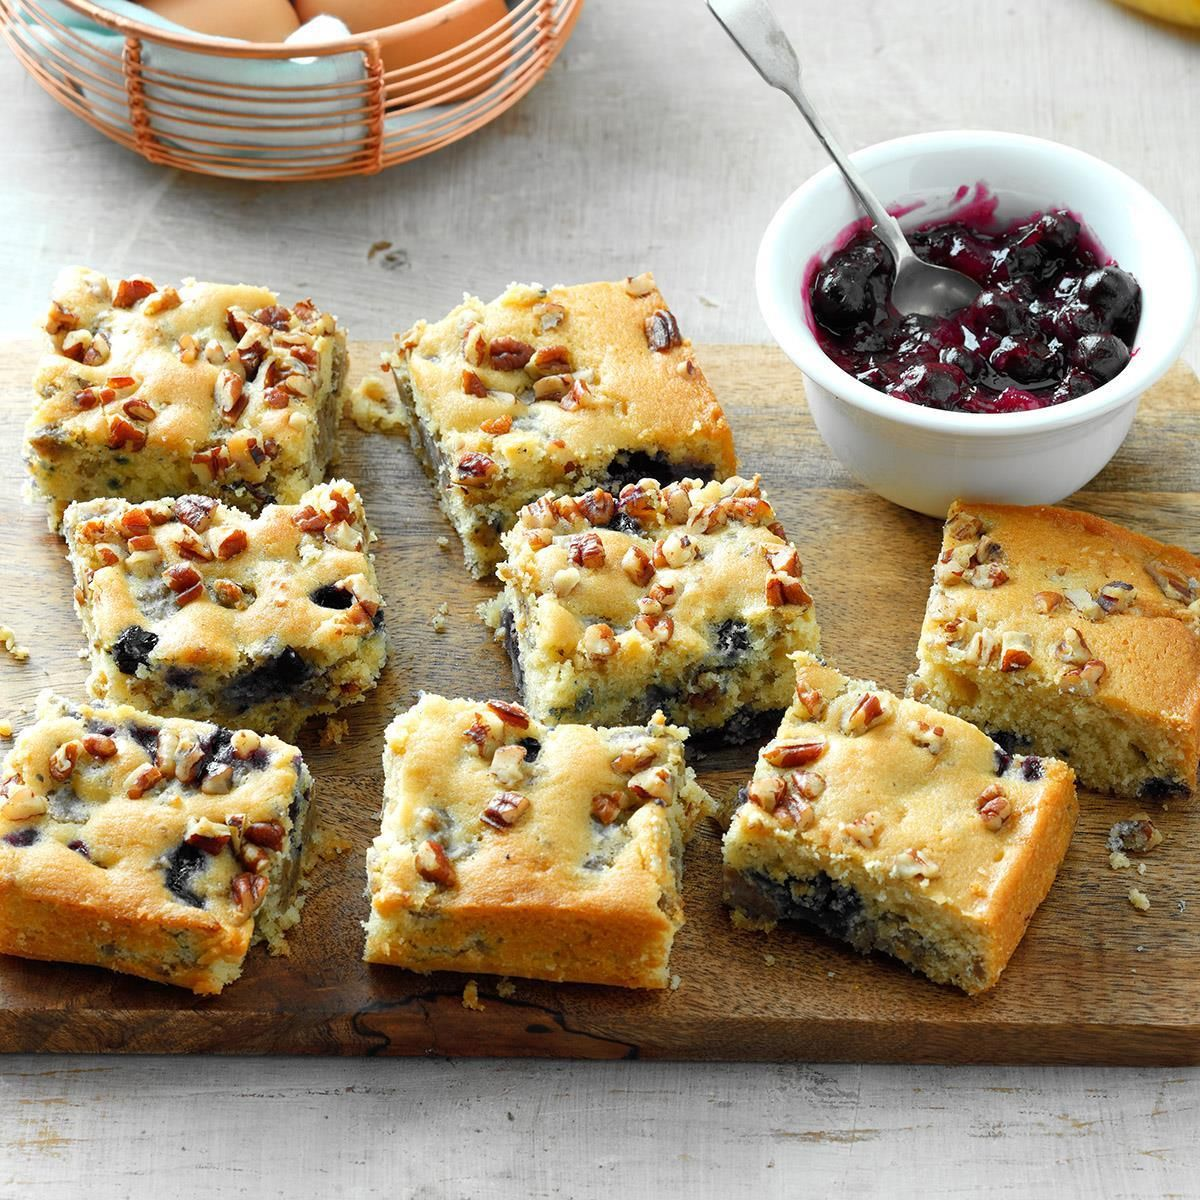 Blueberrysausage breakfast cake recipe with images